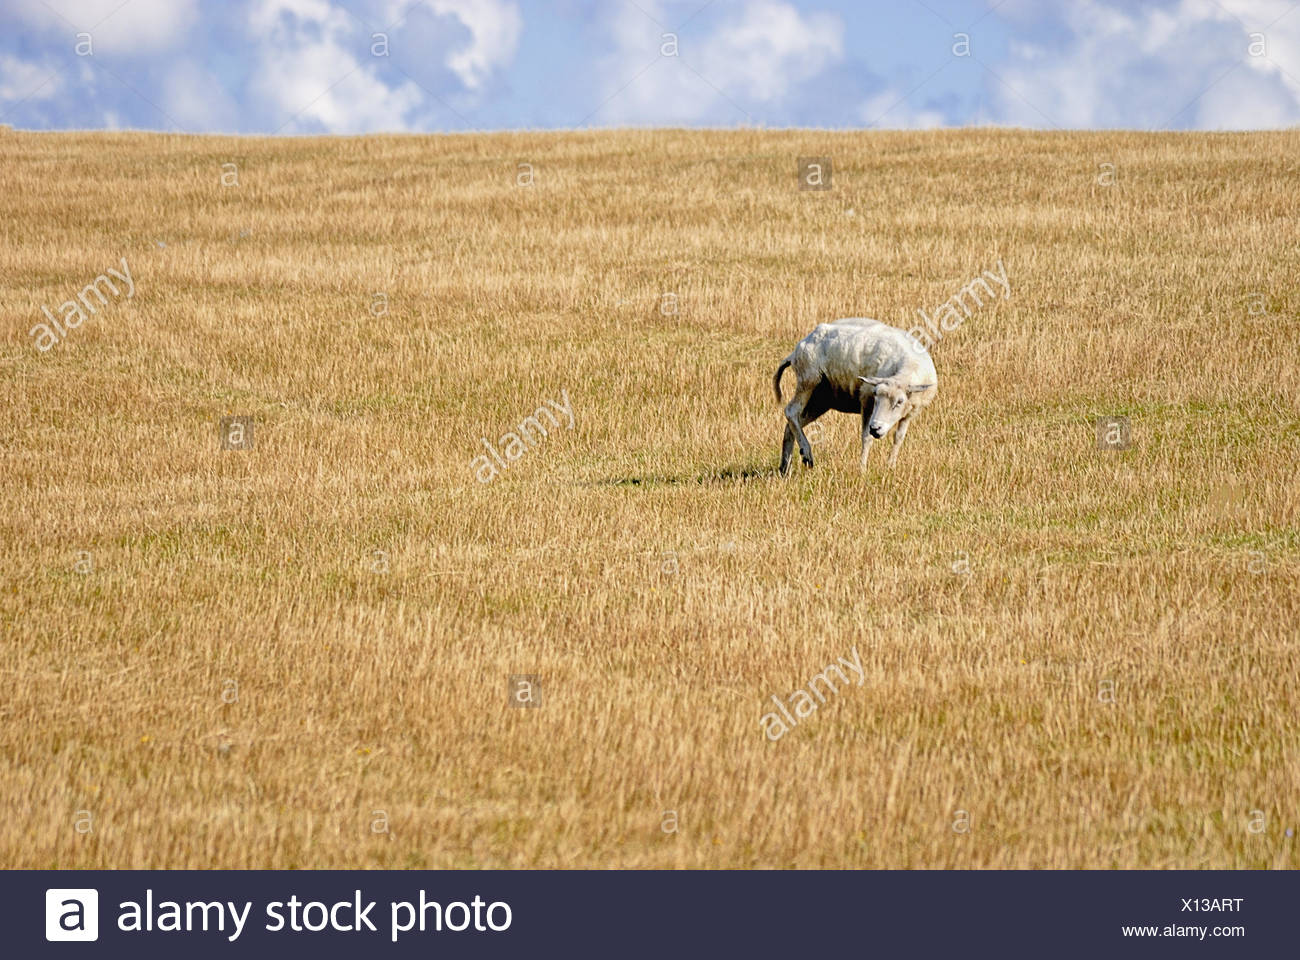 Schaf ohne Wolle - sheep without wool - Stock Image